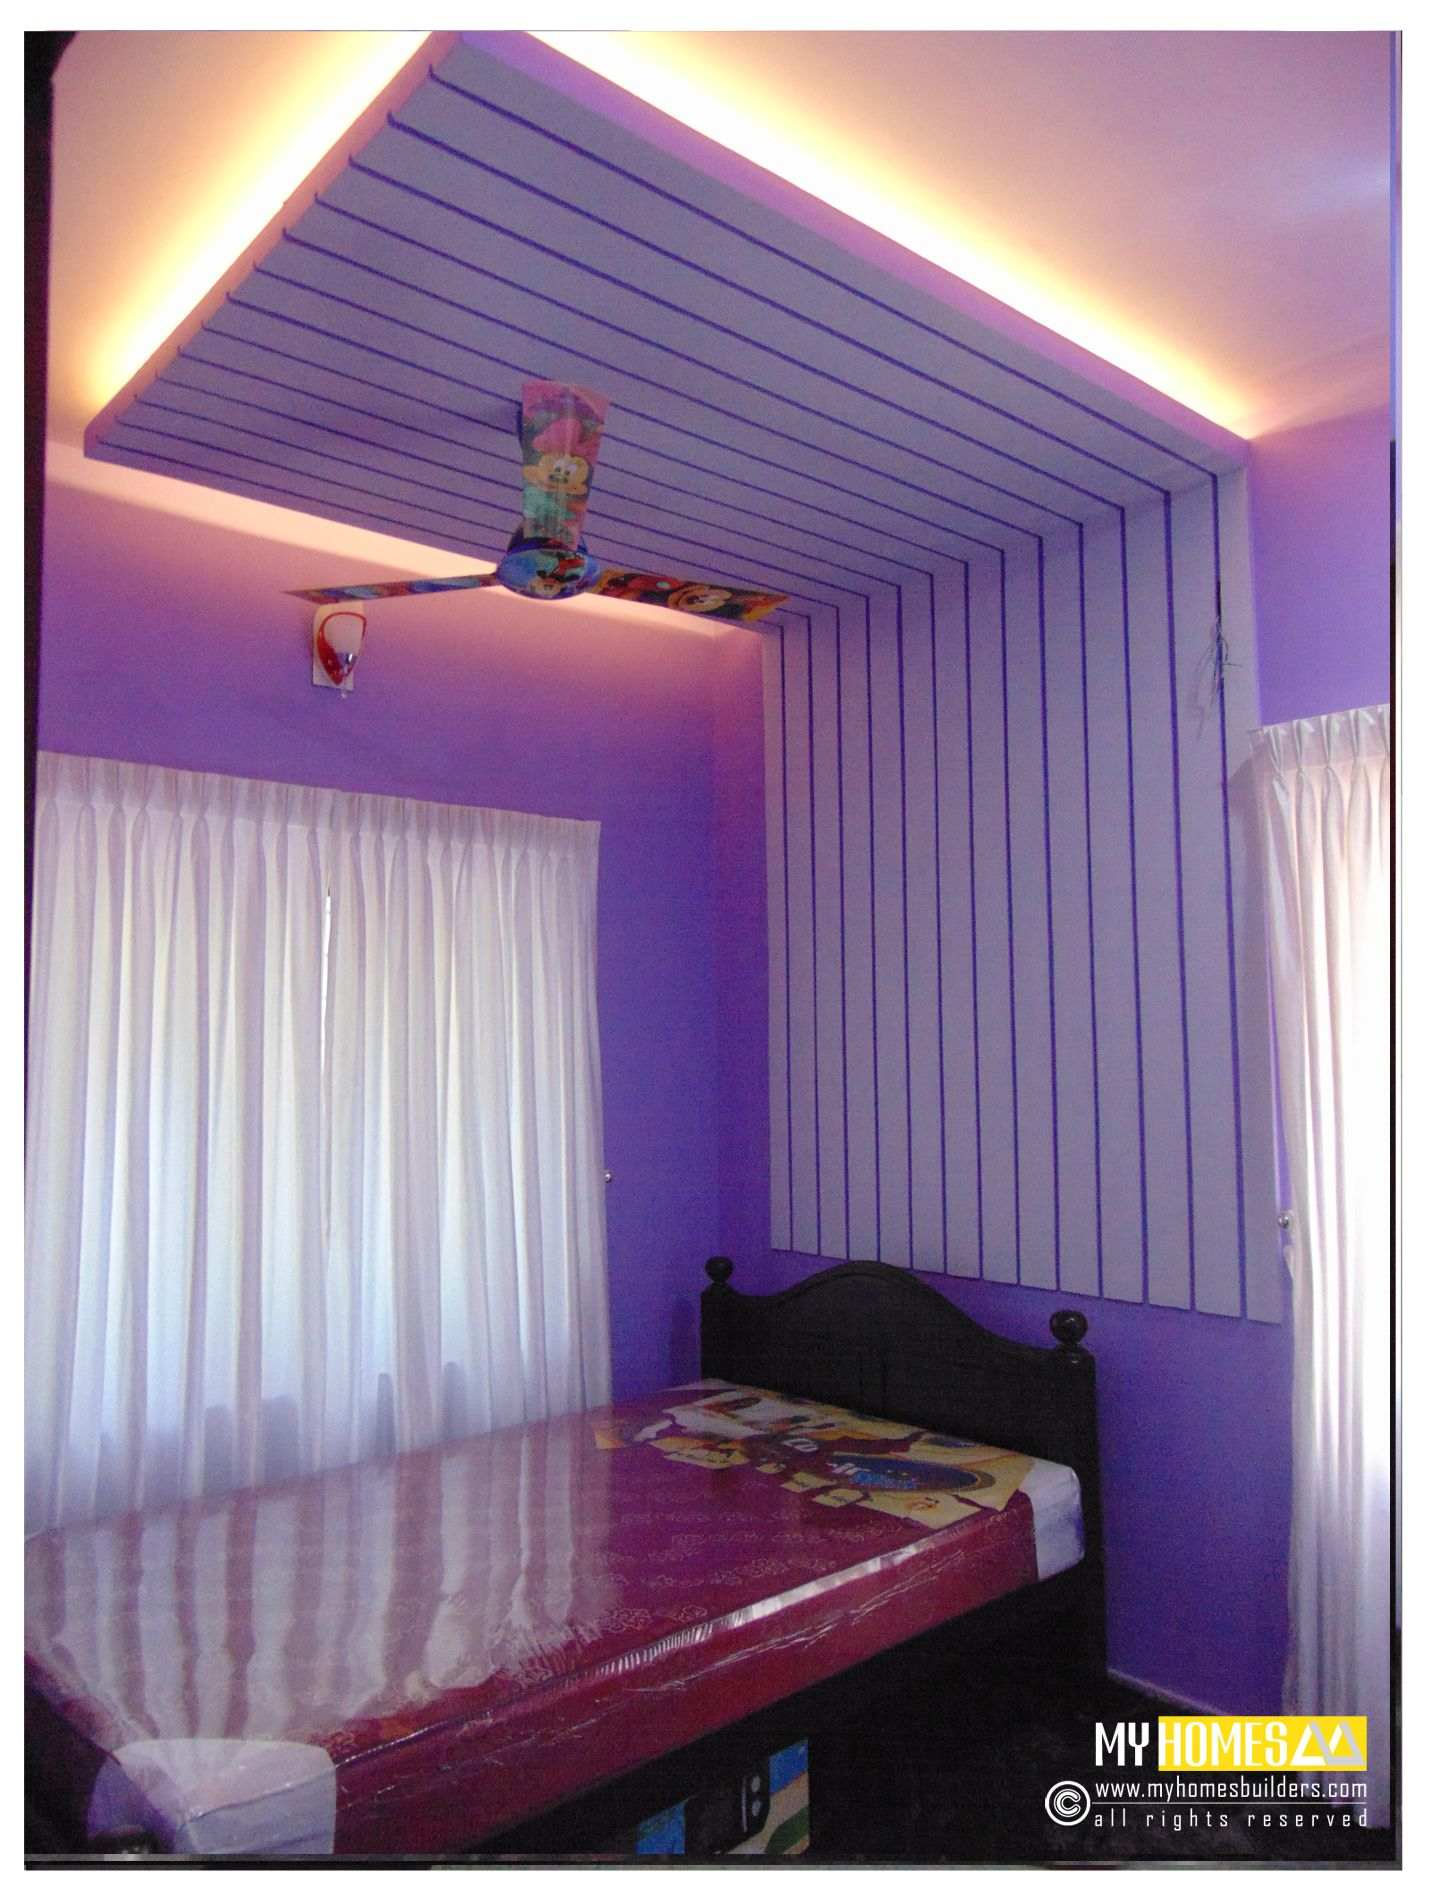 Kids bedroom interior designs in kerala kerala best kids - Interior design for bedroom in india ...